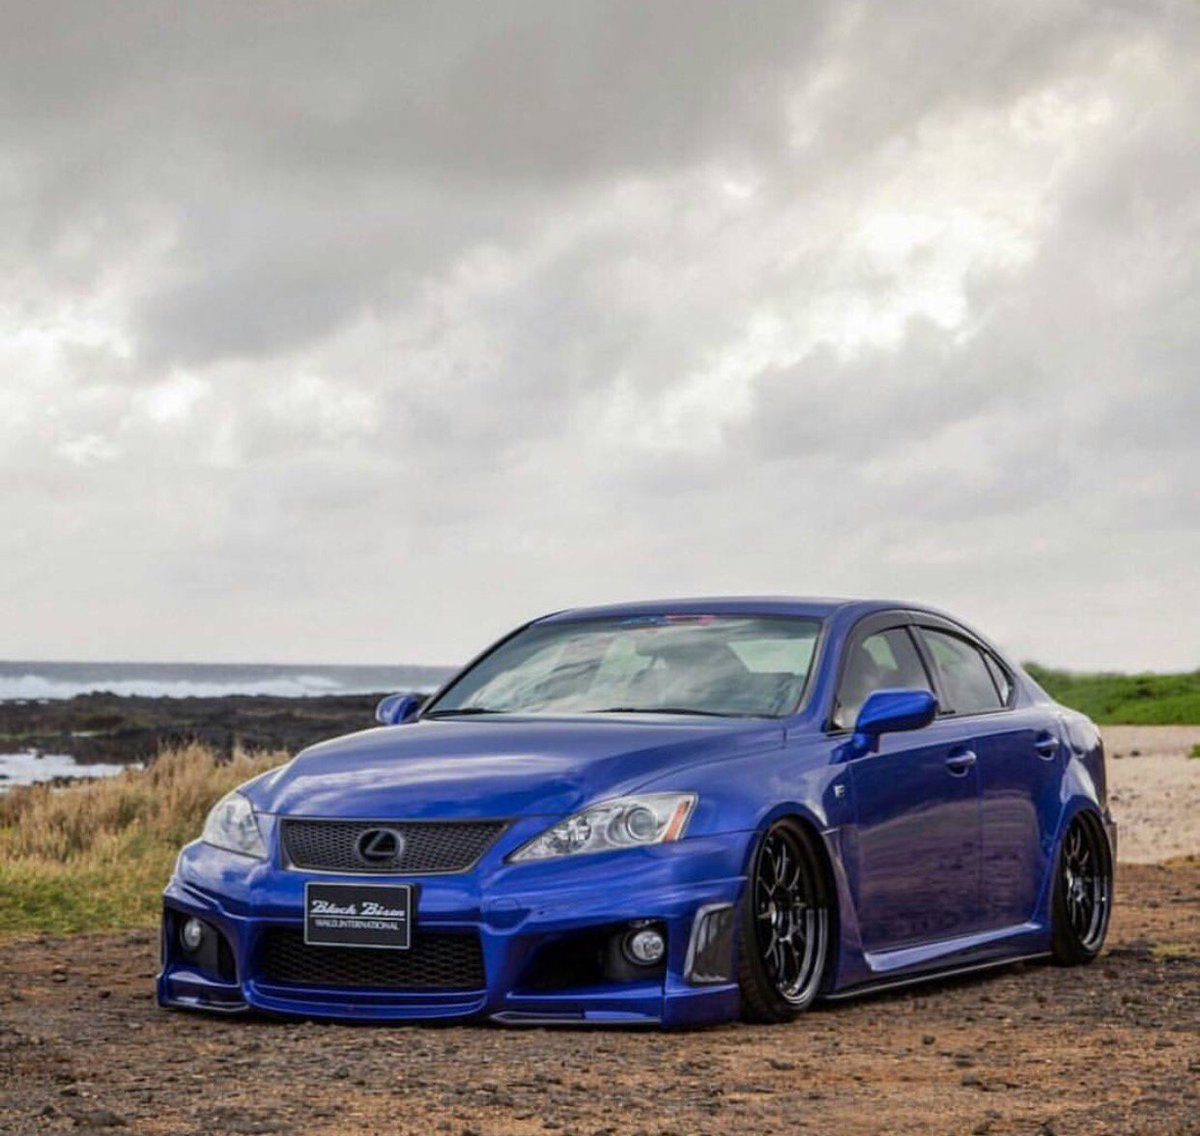 Meraki Autoworks On Twitter Very Nice Slammed Isf Contact Us For